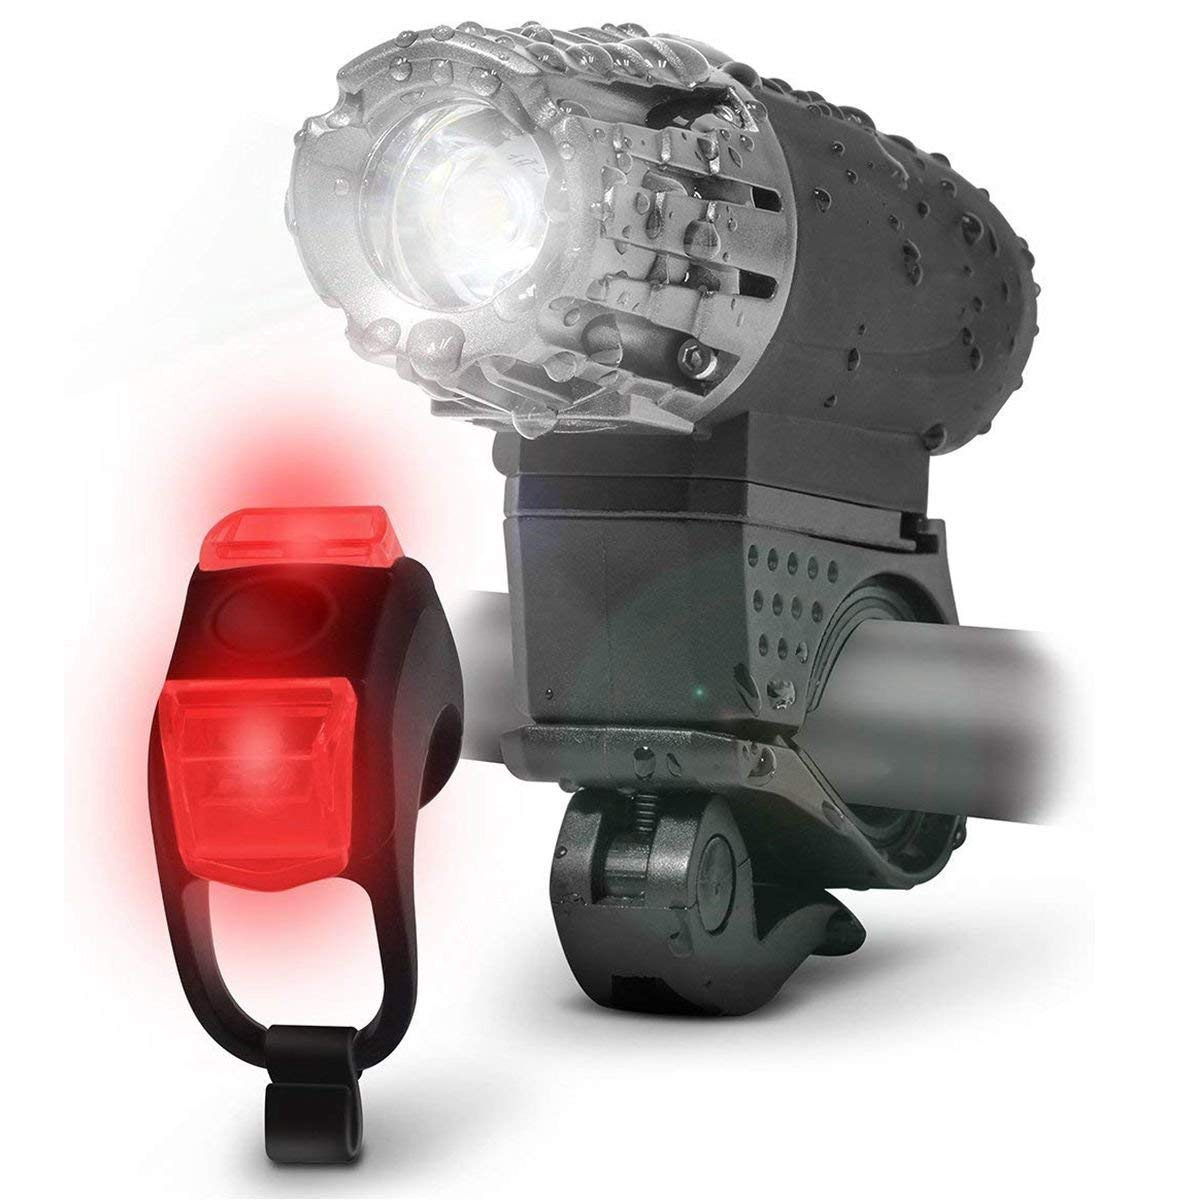 Toogoo Sport LED Bike Light Kit - Rechargeable Bicycle Headlight + Rear Tail Light, 4 Super Bright Front Light Modes